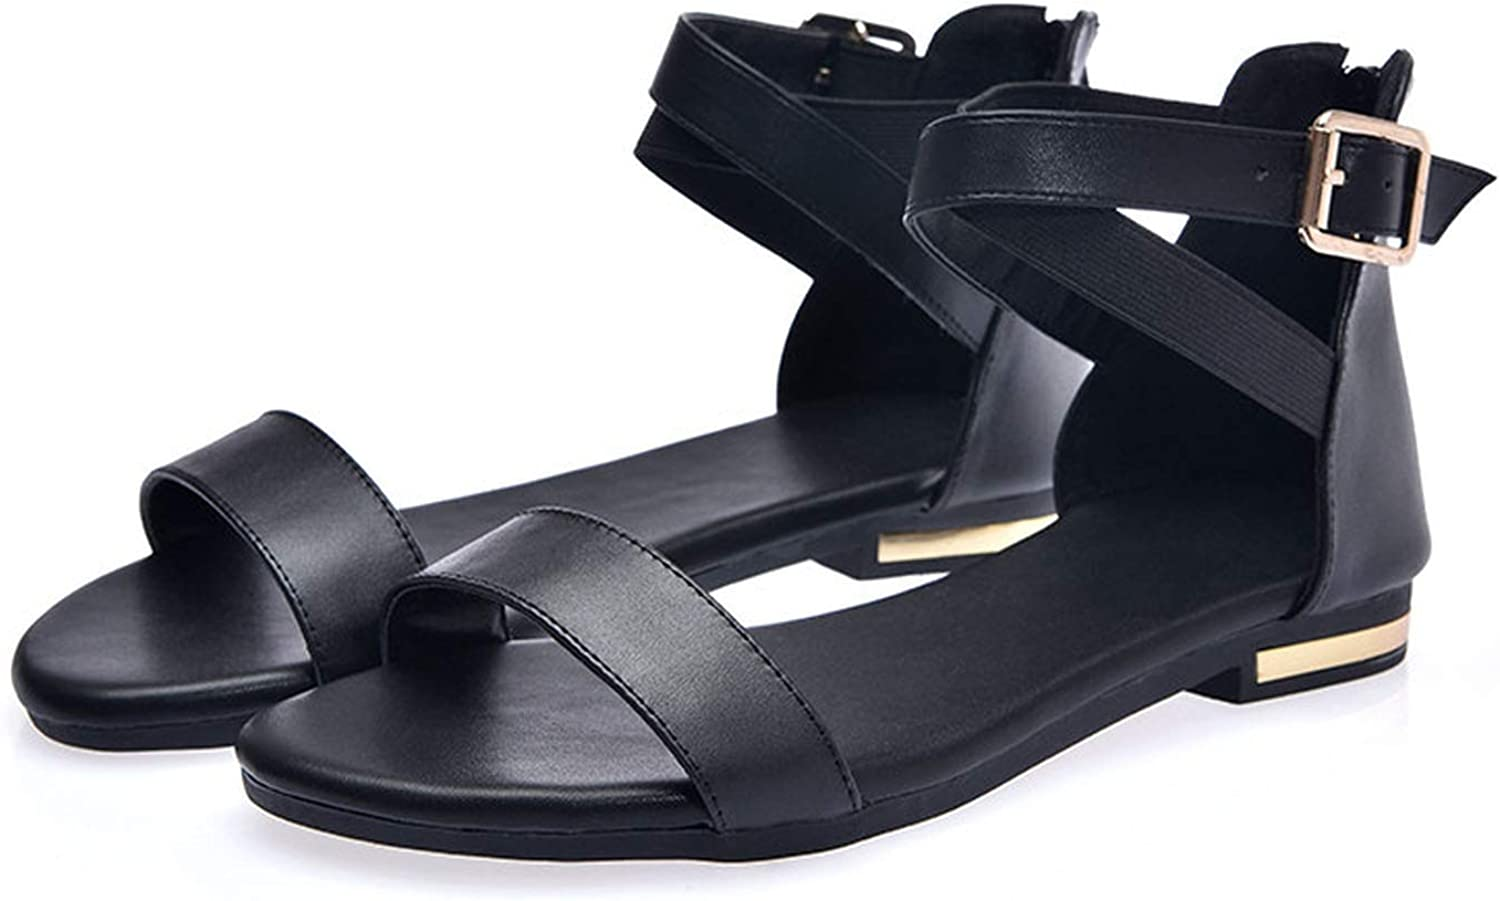 Newest Sandals Women Genuine Leather Shoes Zip Buckle Summer Shoes Casual Shoes,Black,9